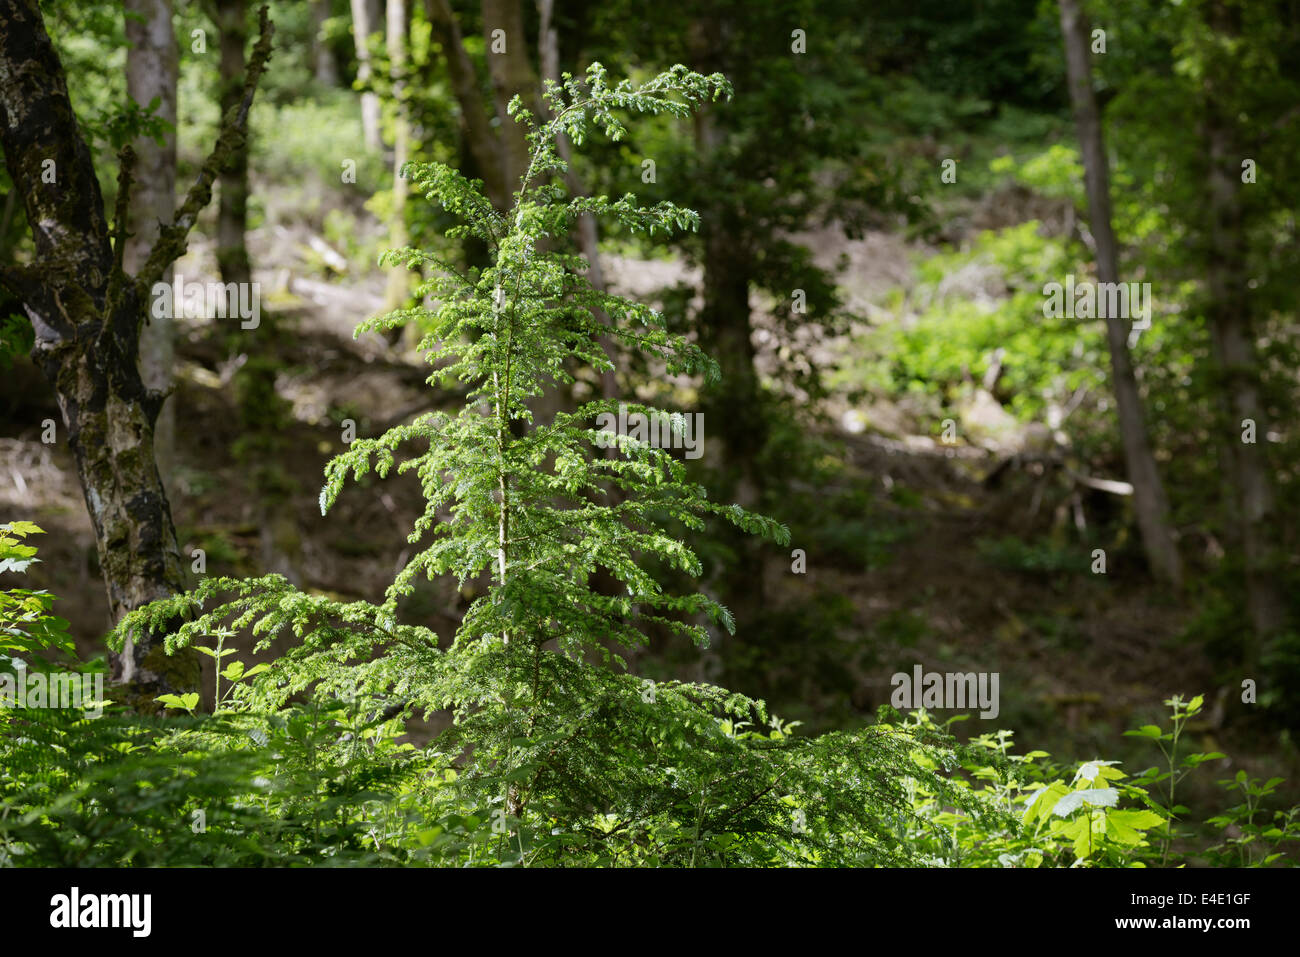 Tsuga heterophylla Western Hemlock regeneration on an ancient woodland site previously cleared of conifers, Wales, - Stock Image